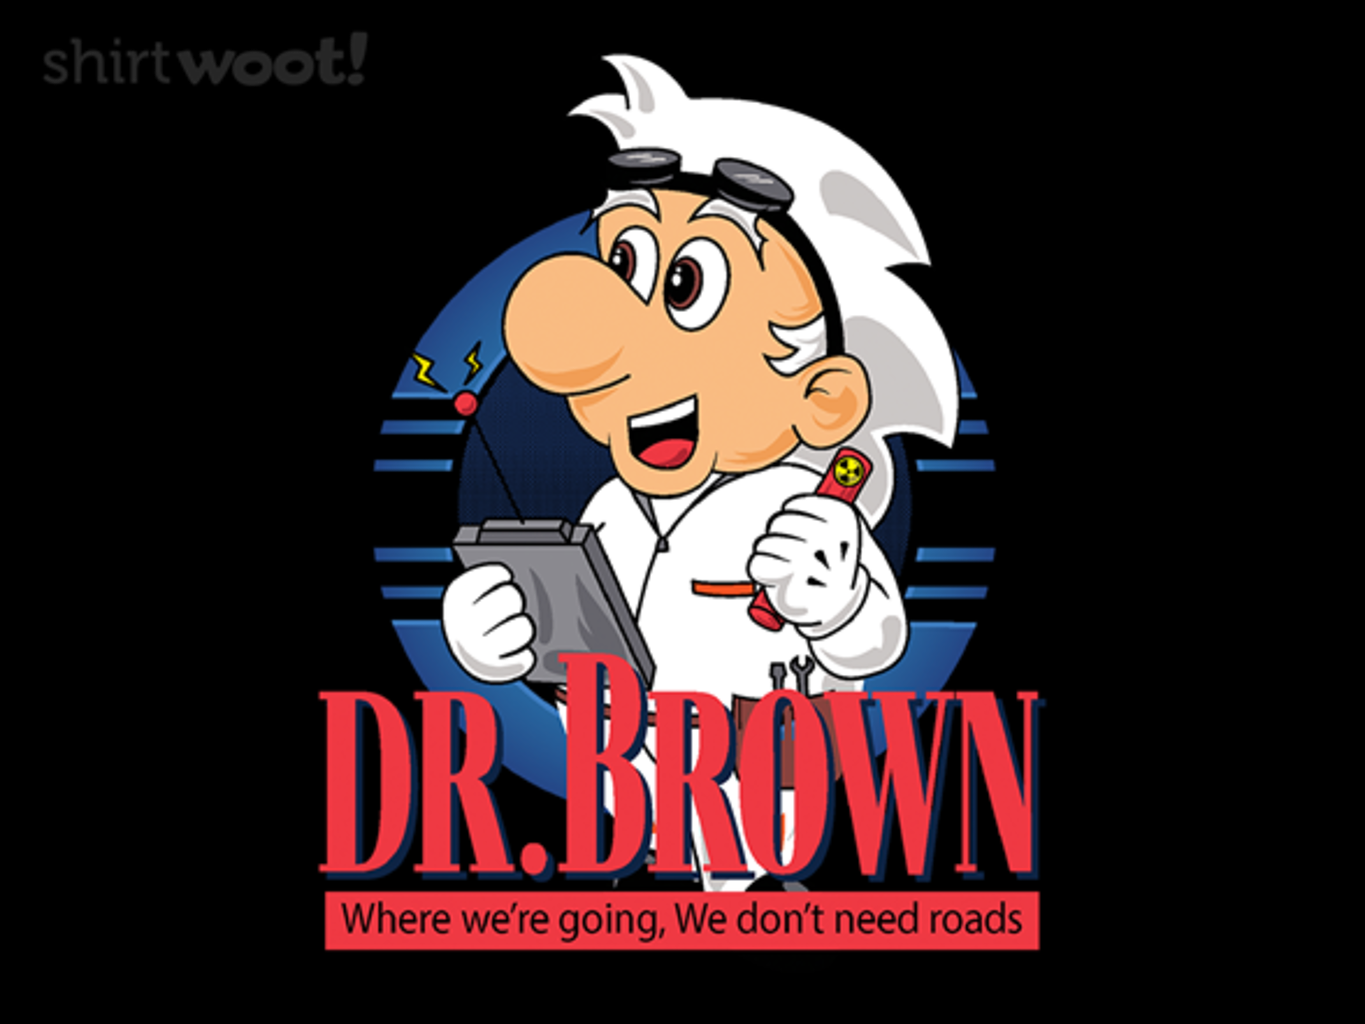 Woot!: Dr. Brown